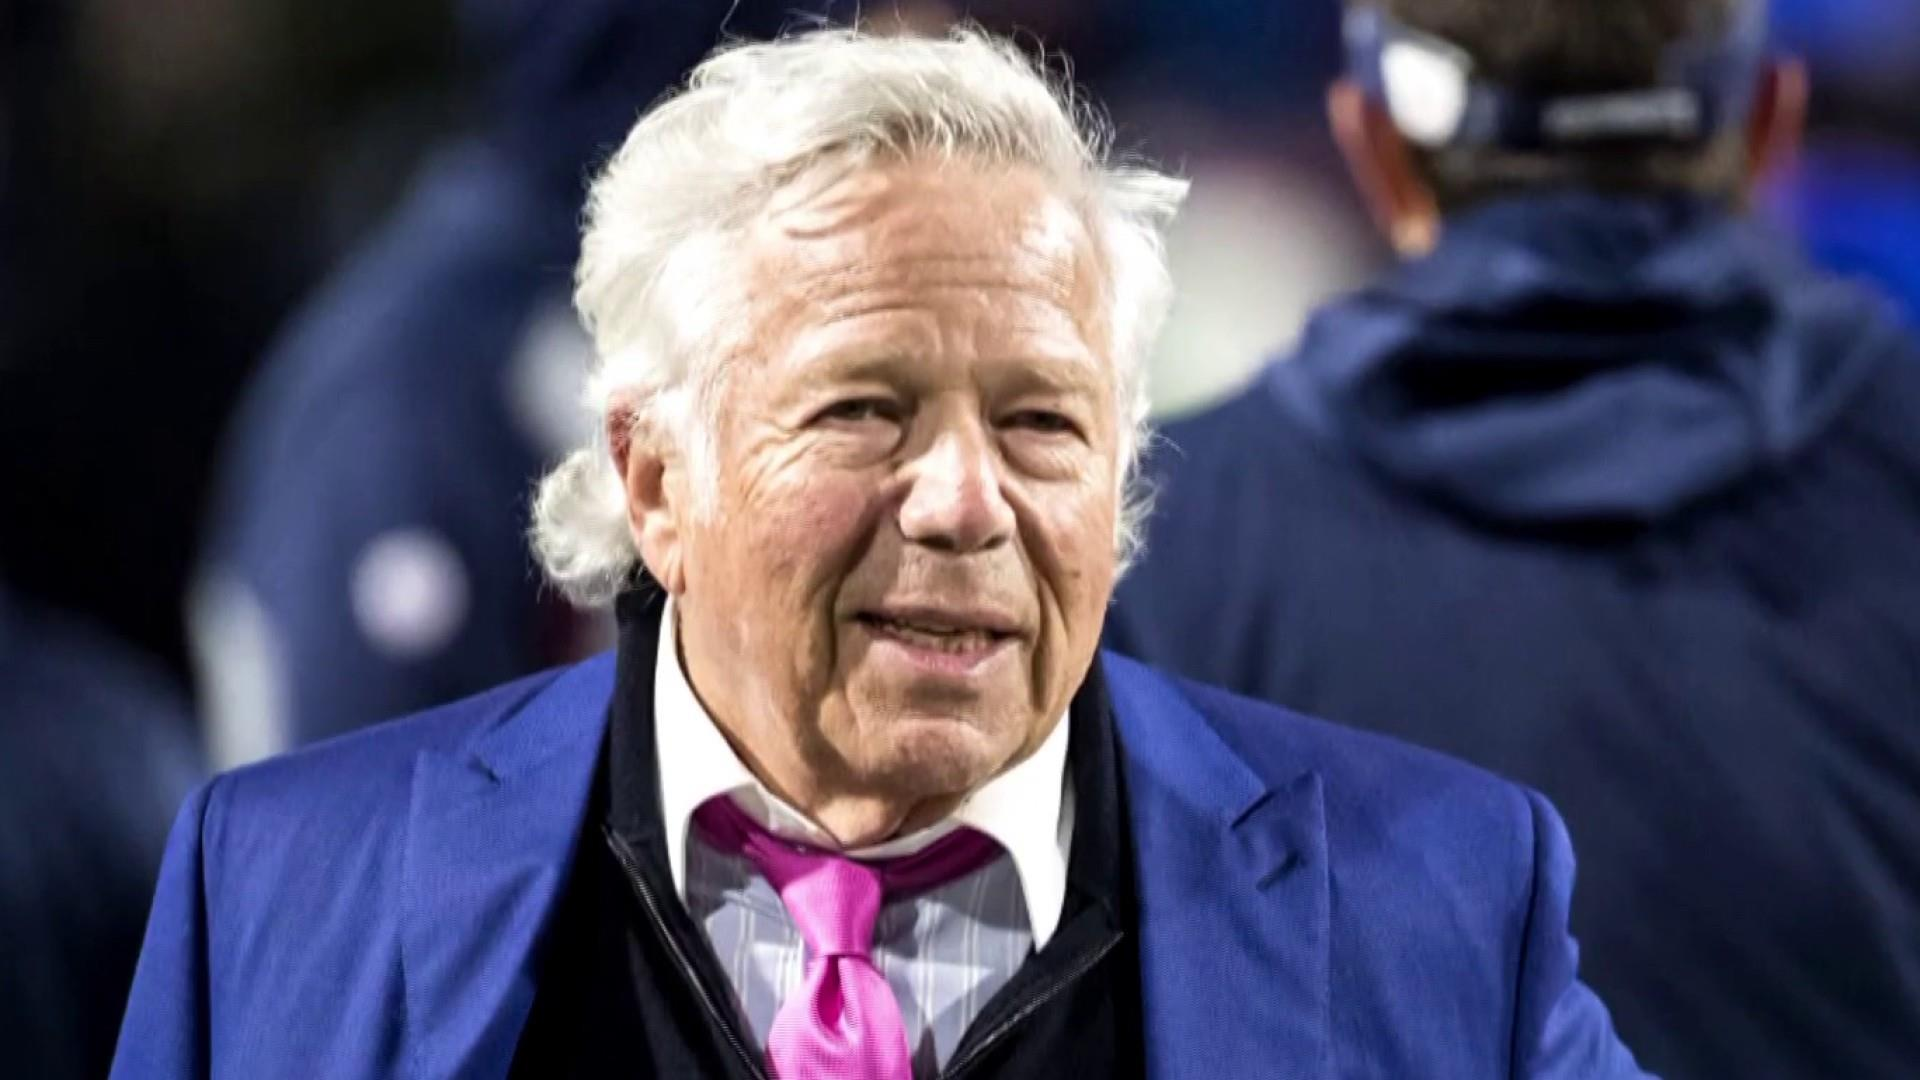 Patriots owner Robert Kraft offered deal to drop prostitution charges